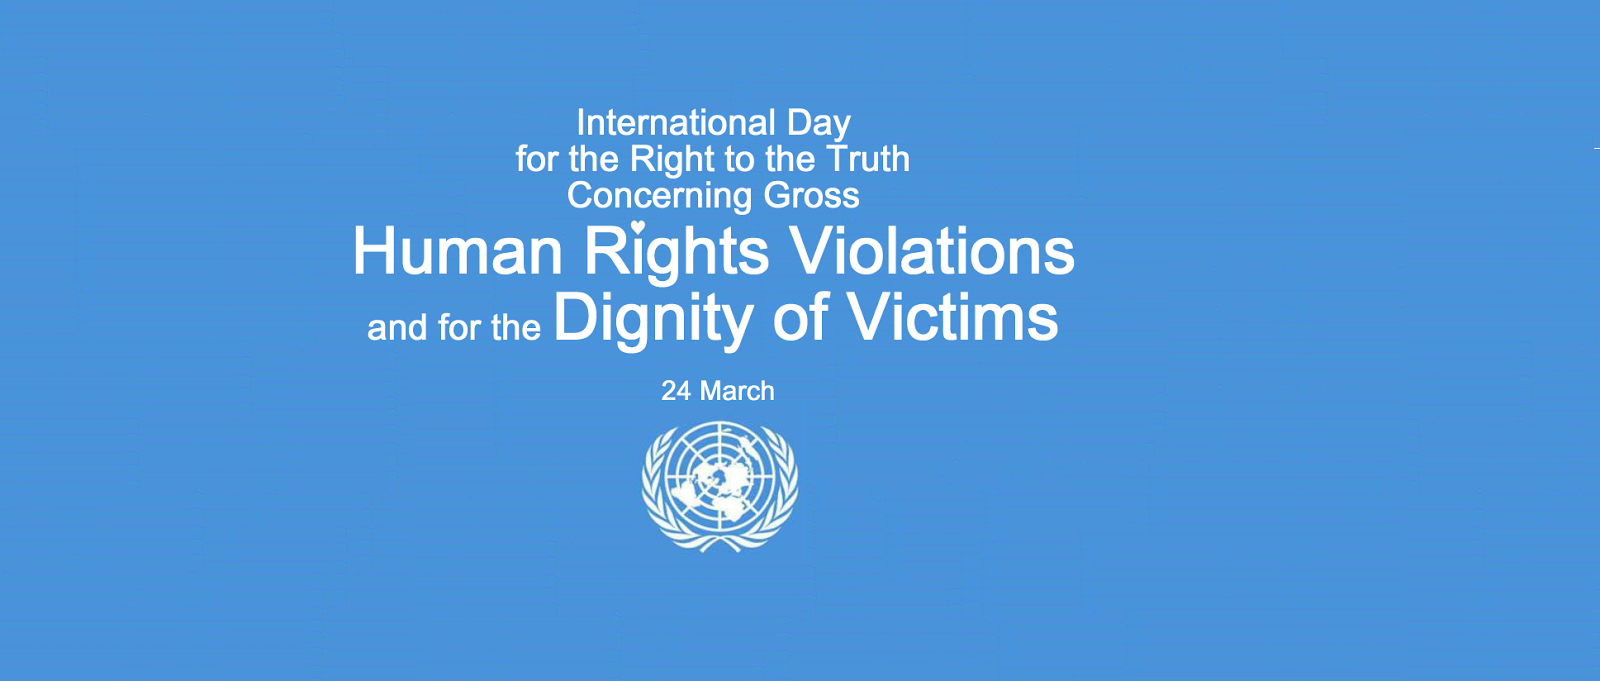 an analysis of human rights violators Free human rights violations papers, essays european convention of human rights analysis - the right to a fair trial has a vital importance in the.